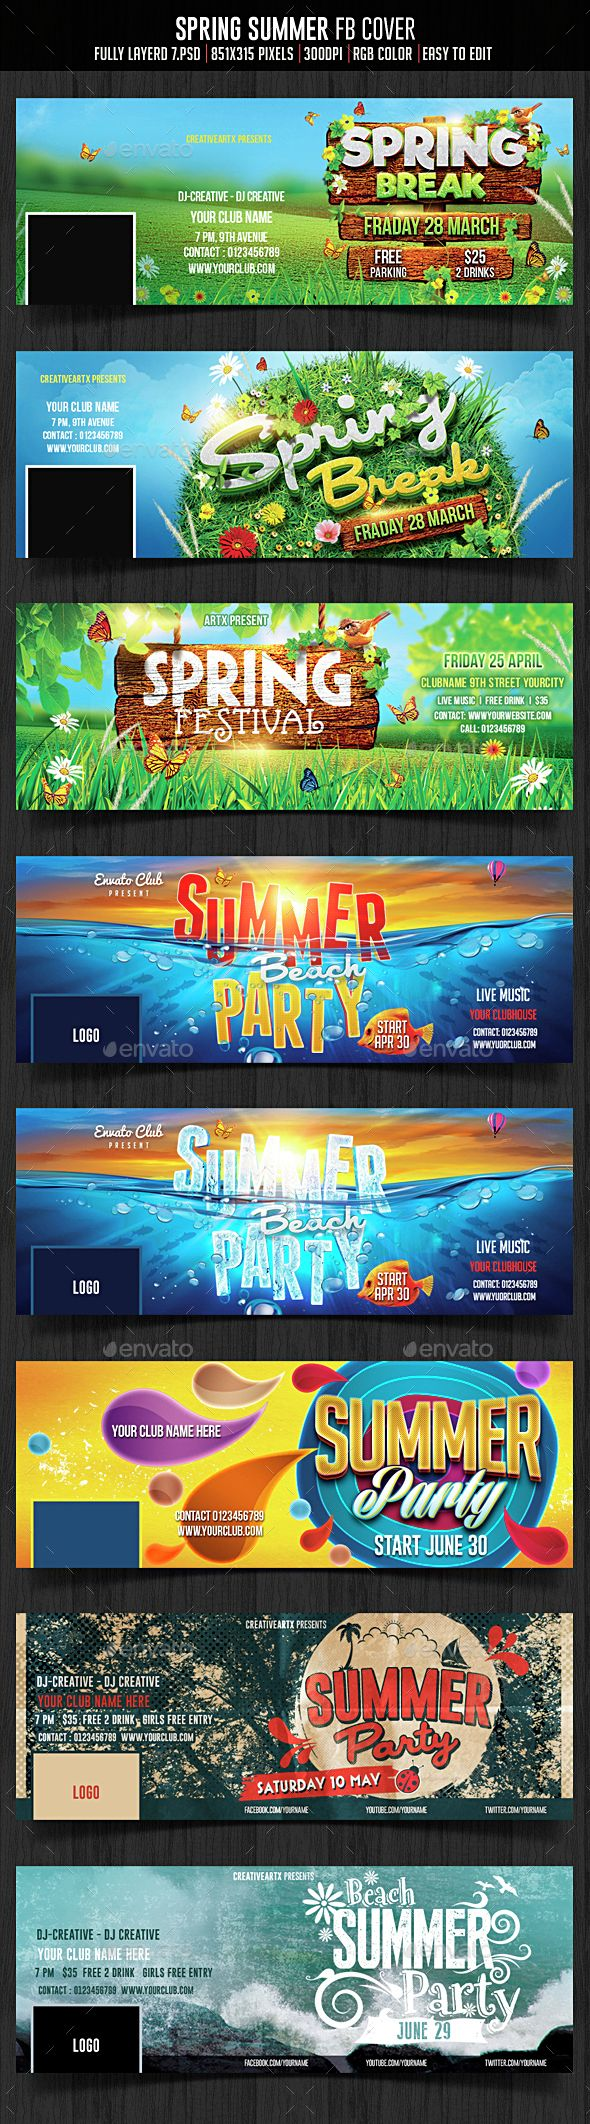 Spring Summer Facebook Cover Template PSD. Download here: http://graphicriver.net/item/spring-summer-facebook-cover/15174022?ref=ksioks